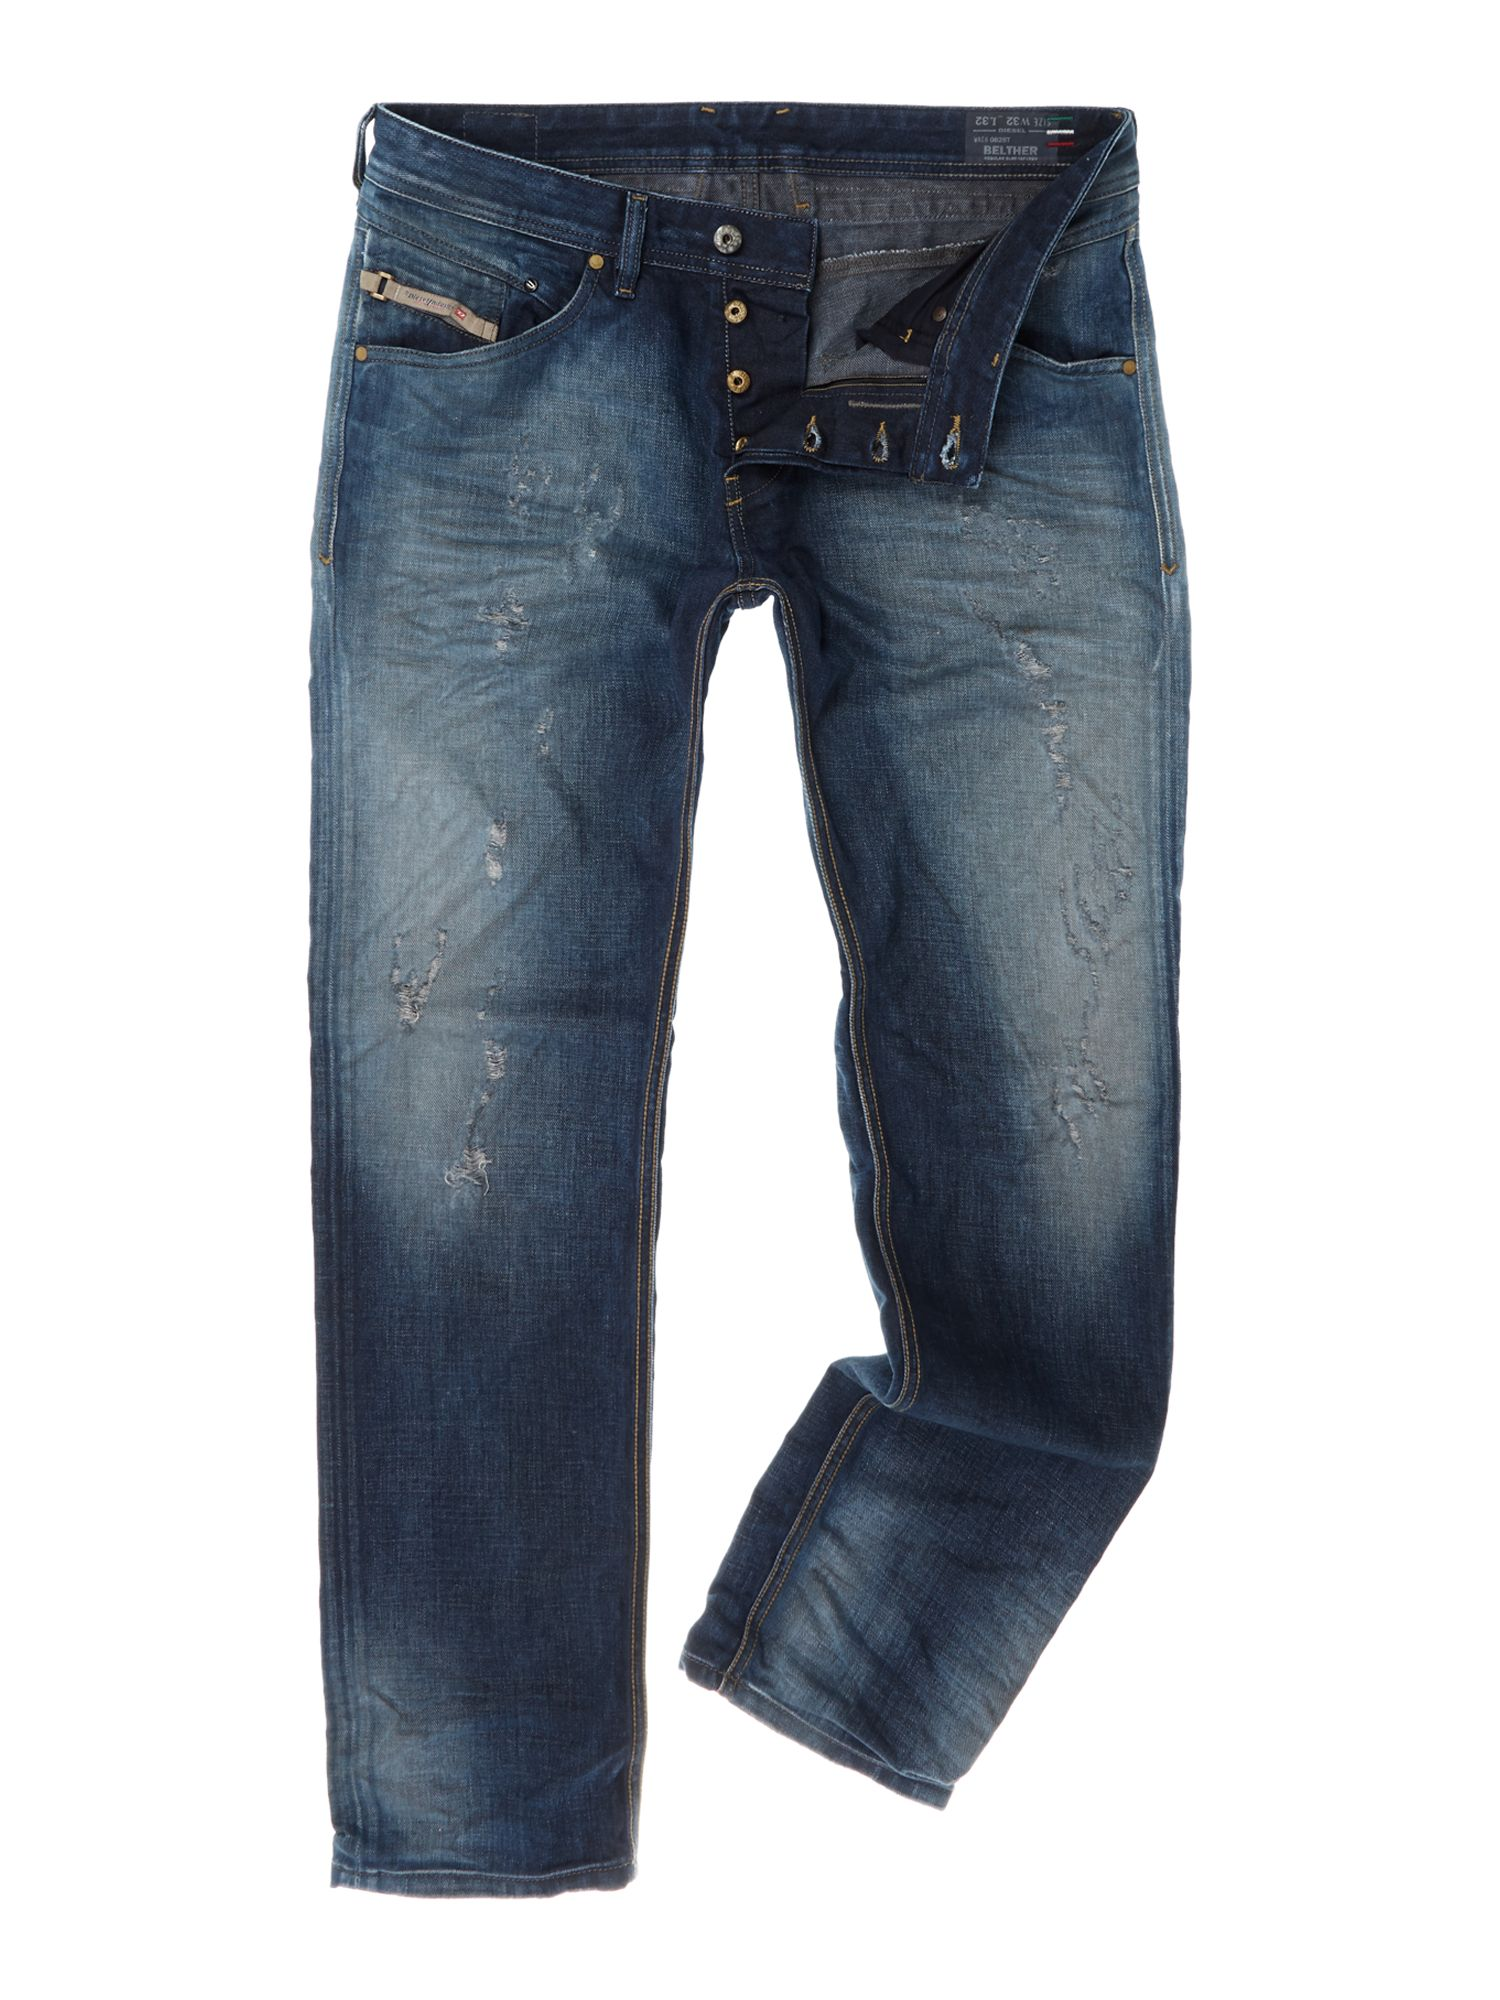 Belther 0828T icon tapered fit jean